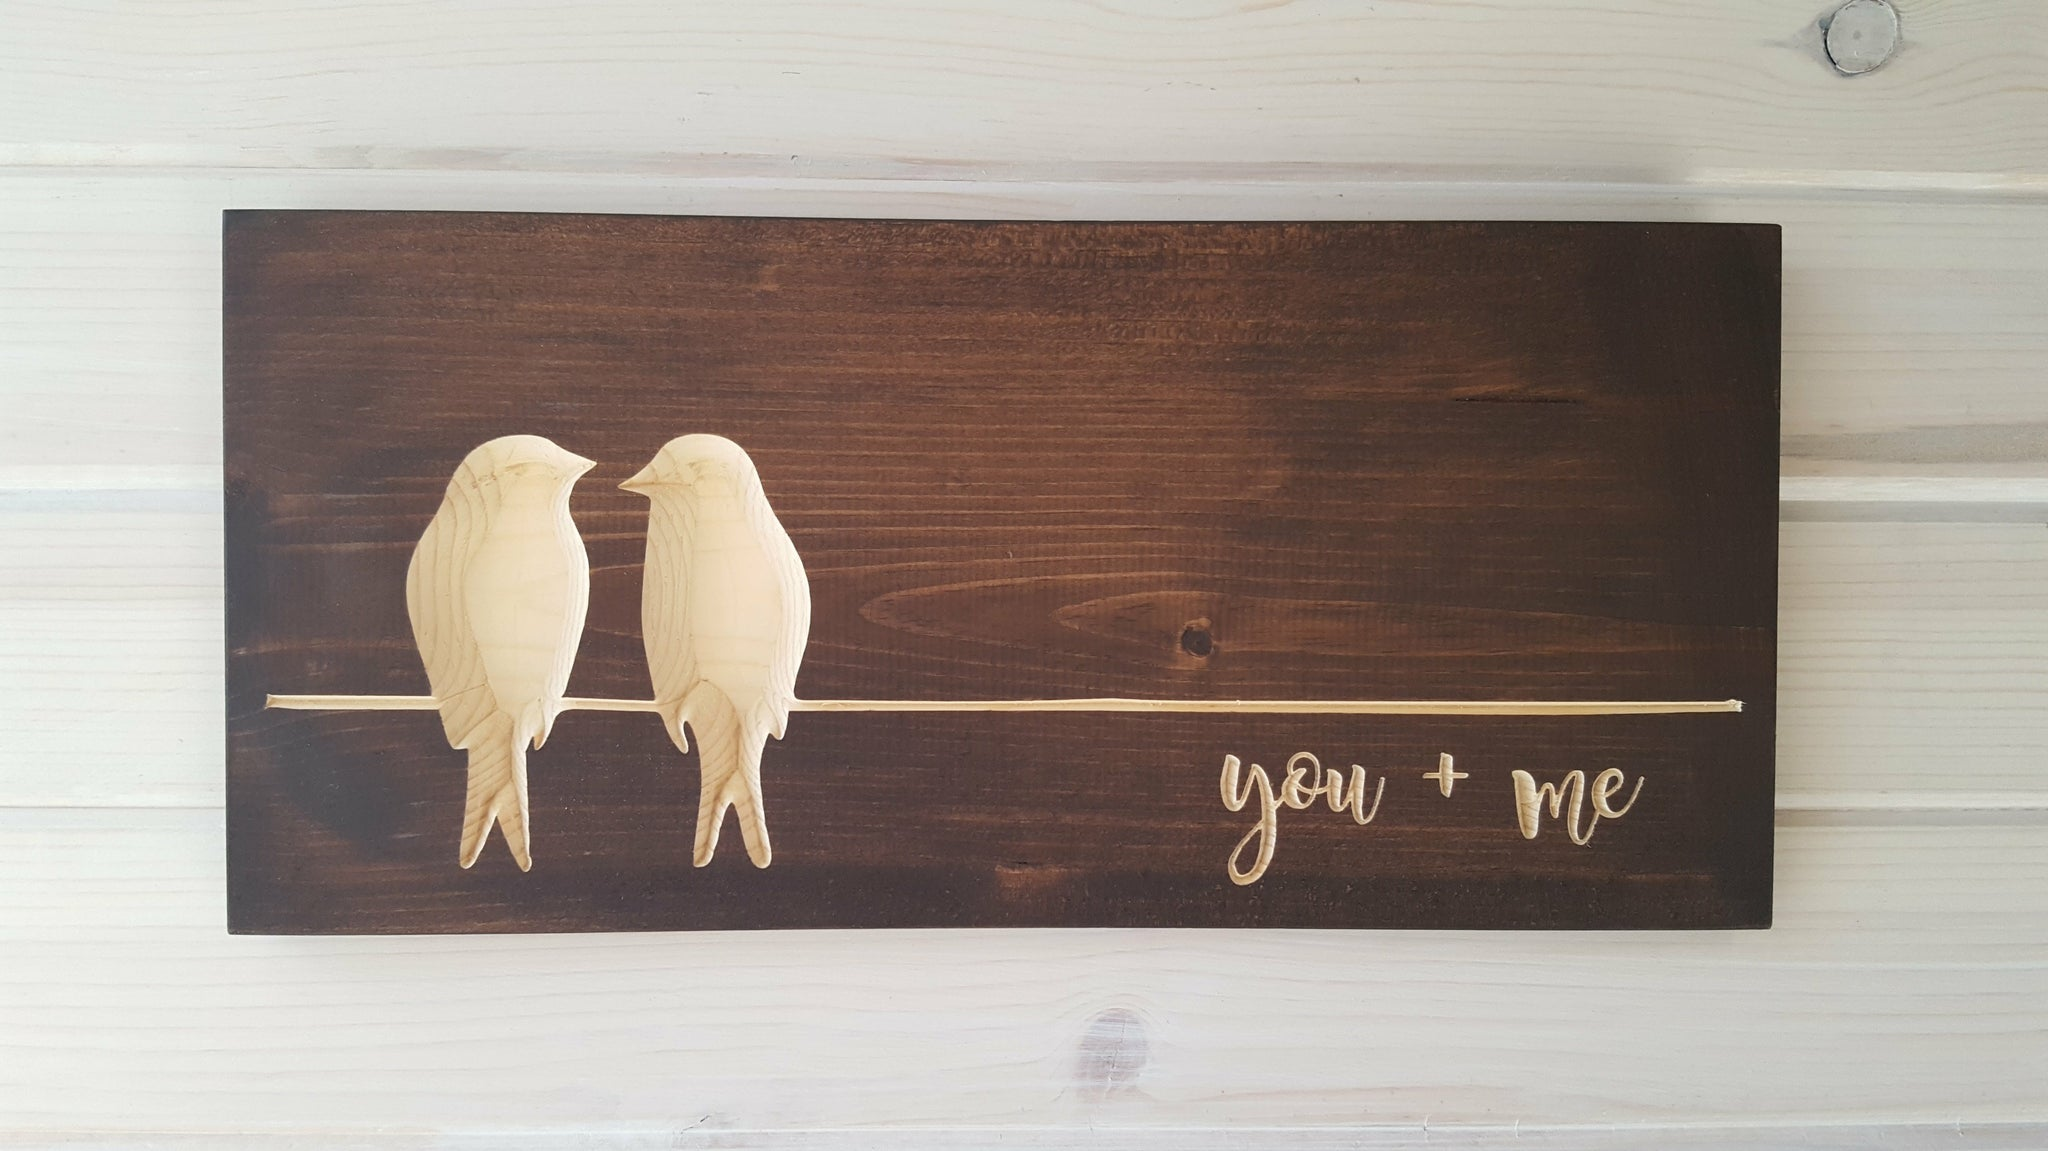 You Me Love Birds Wood Wall Art 7 in x 16 in - Celebrate Local, Shop The Best of Ohio